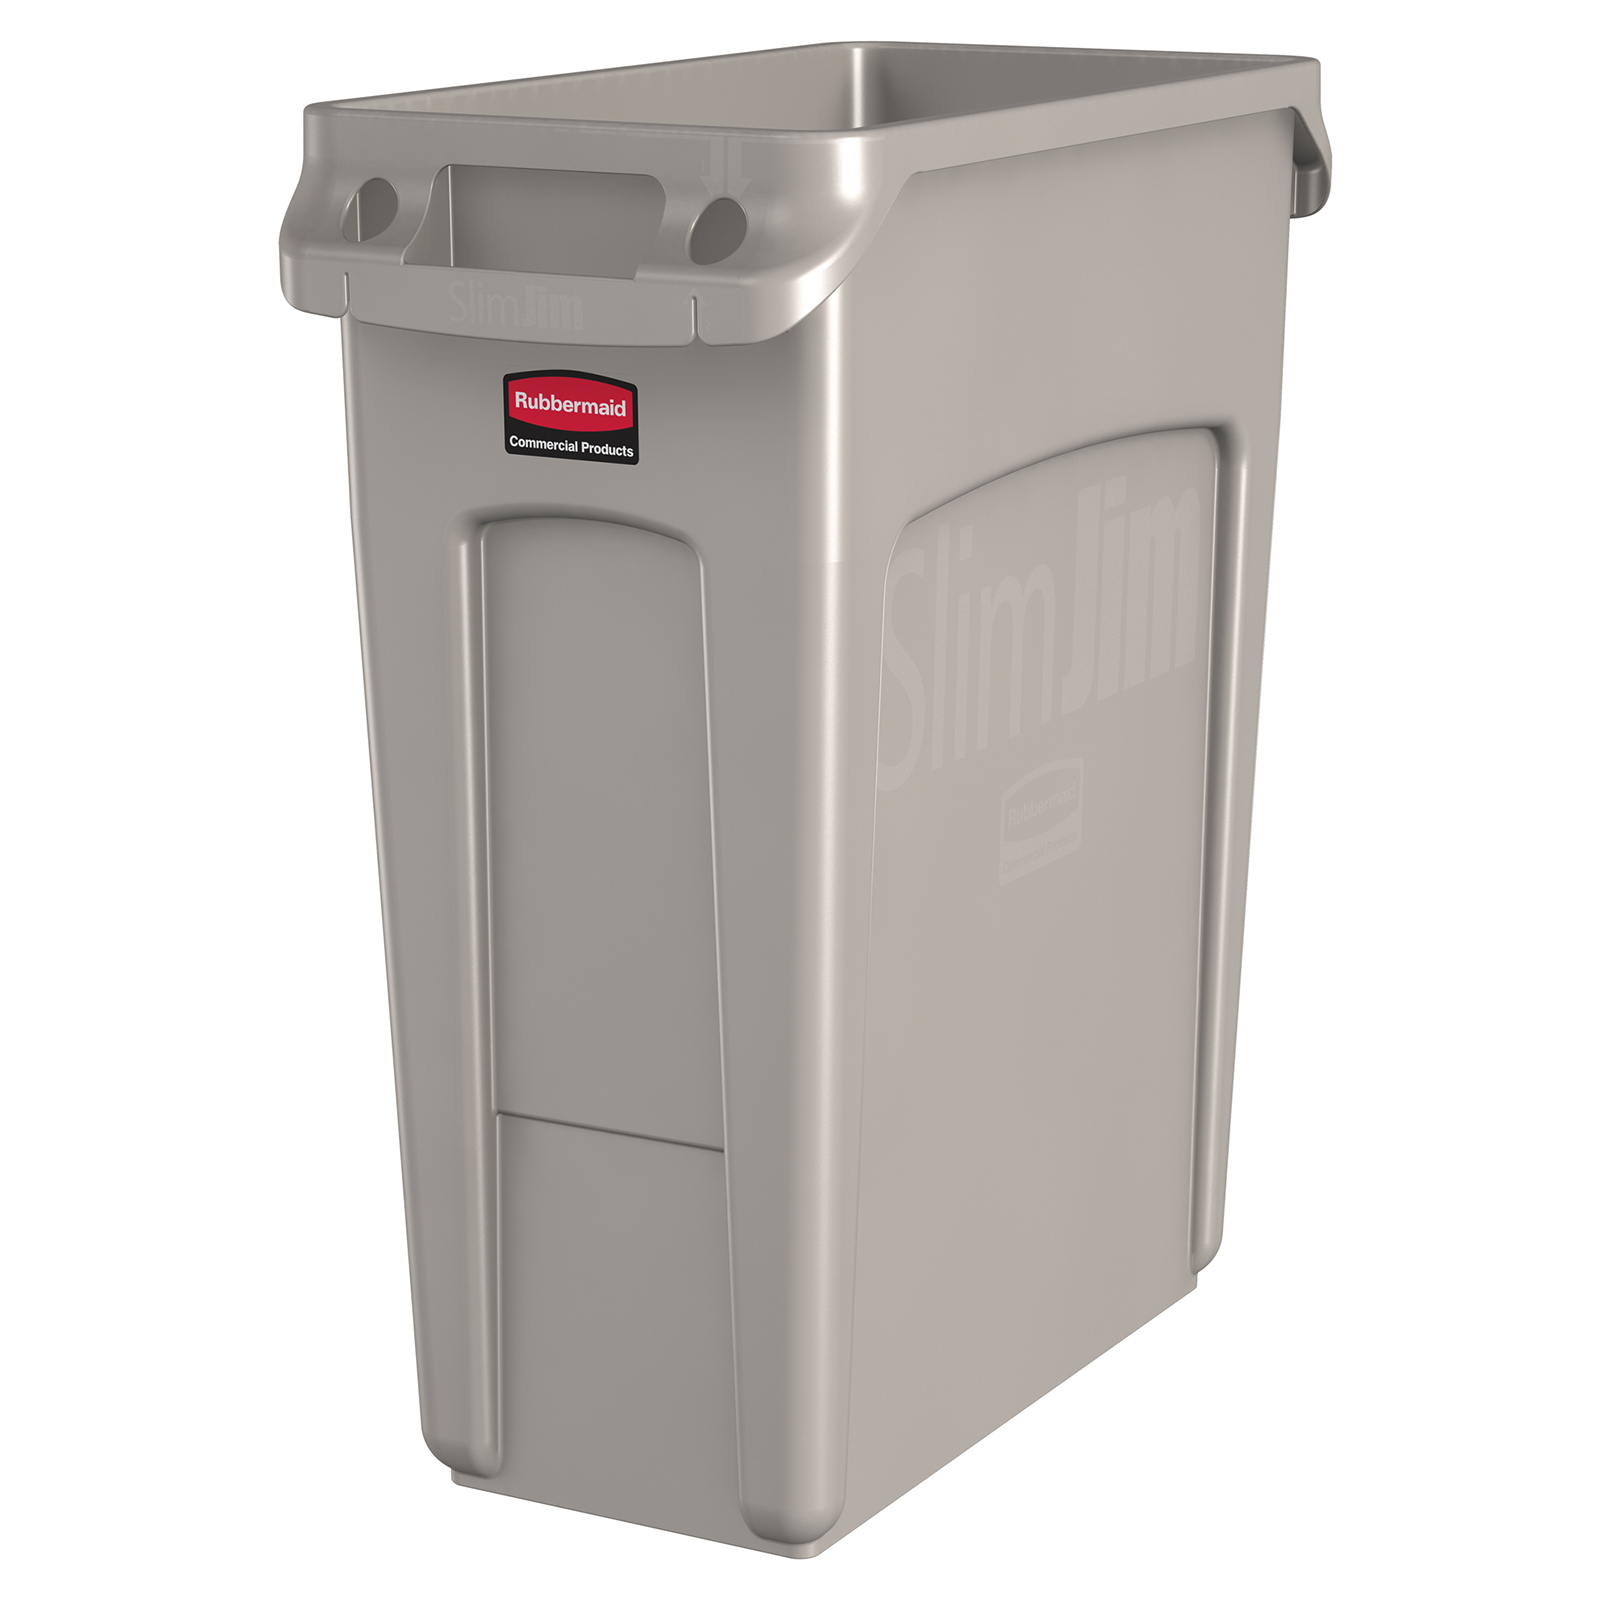 Rubbermaid Commercial Products 1971259 trash receptacle, indoor